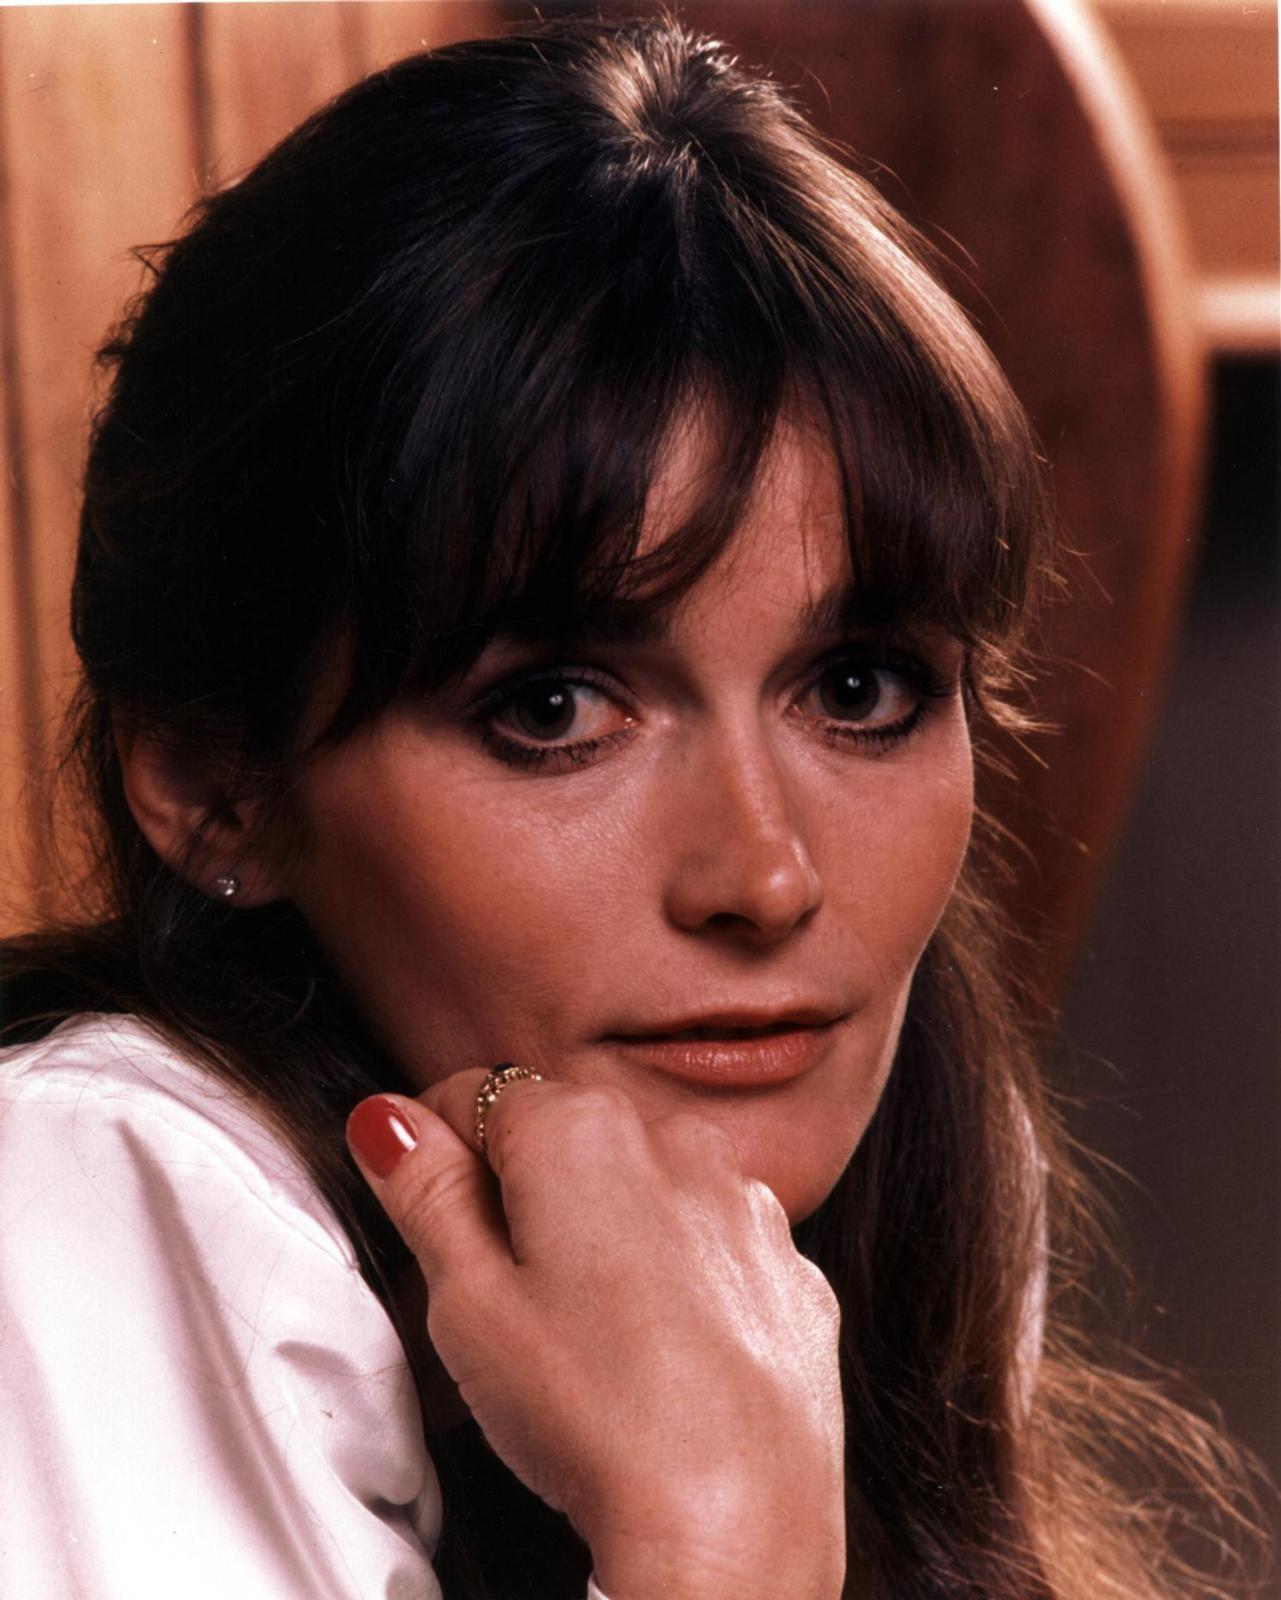 margot kidder - photo #13